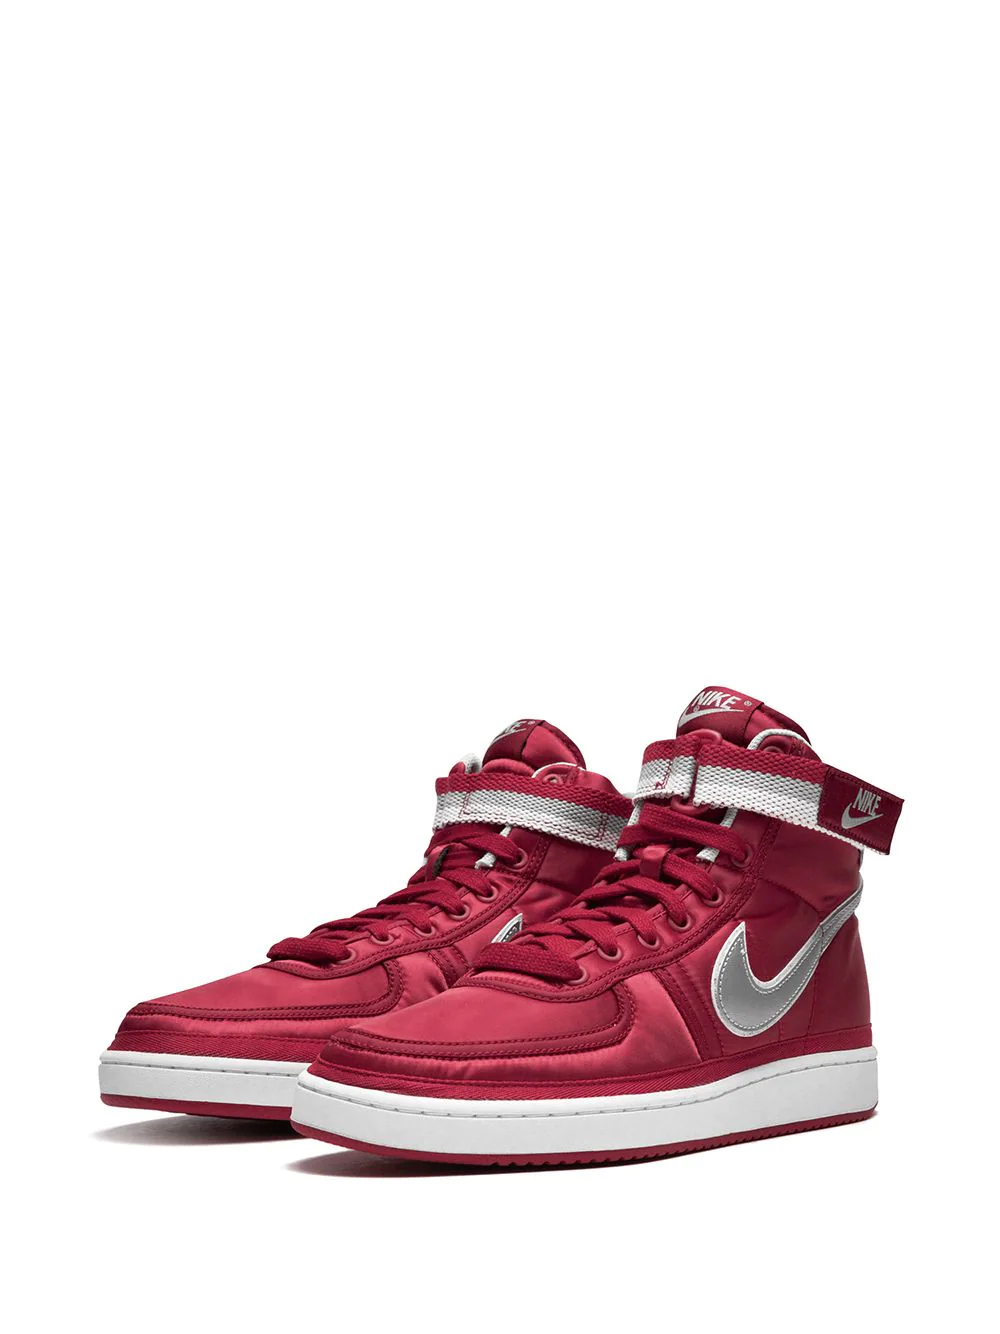 NIKE | Nike кроссовки Vandal High Supreme QS | Clouty